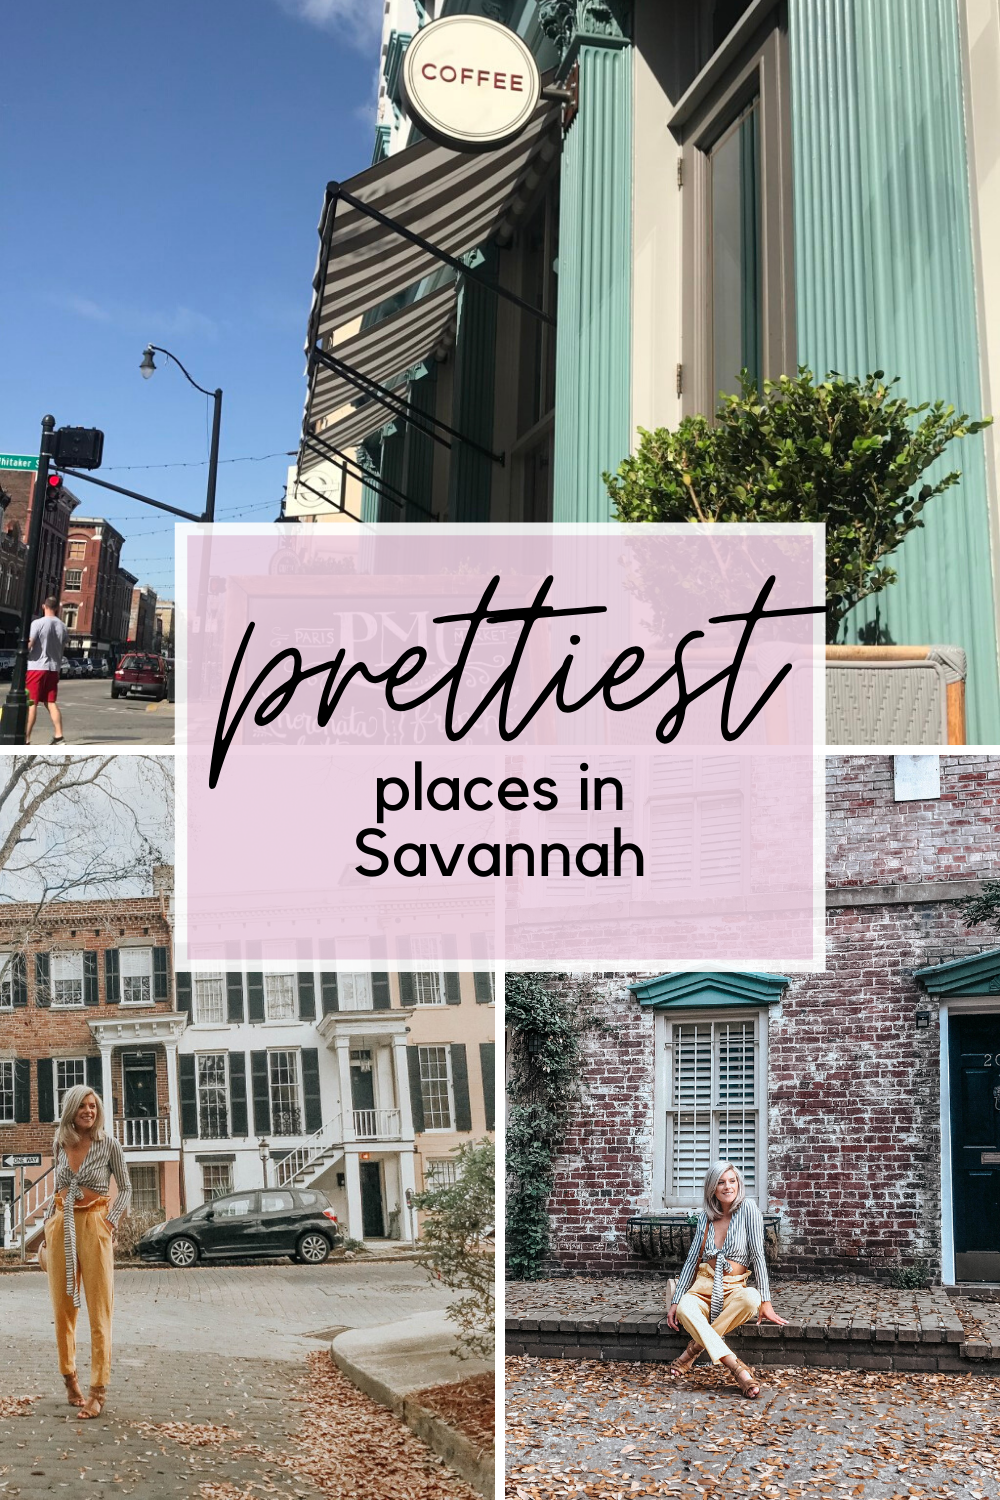 A Local S Guide To Savannah Fun Things To Do In Savannah Savannah Chat Travel Savannah Places To Go